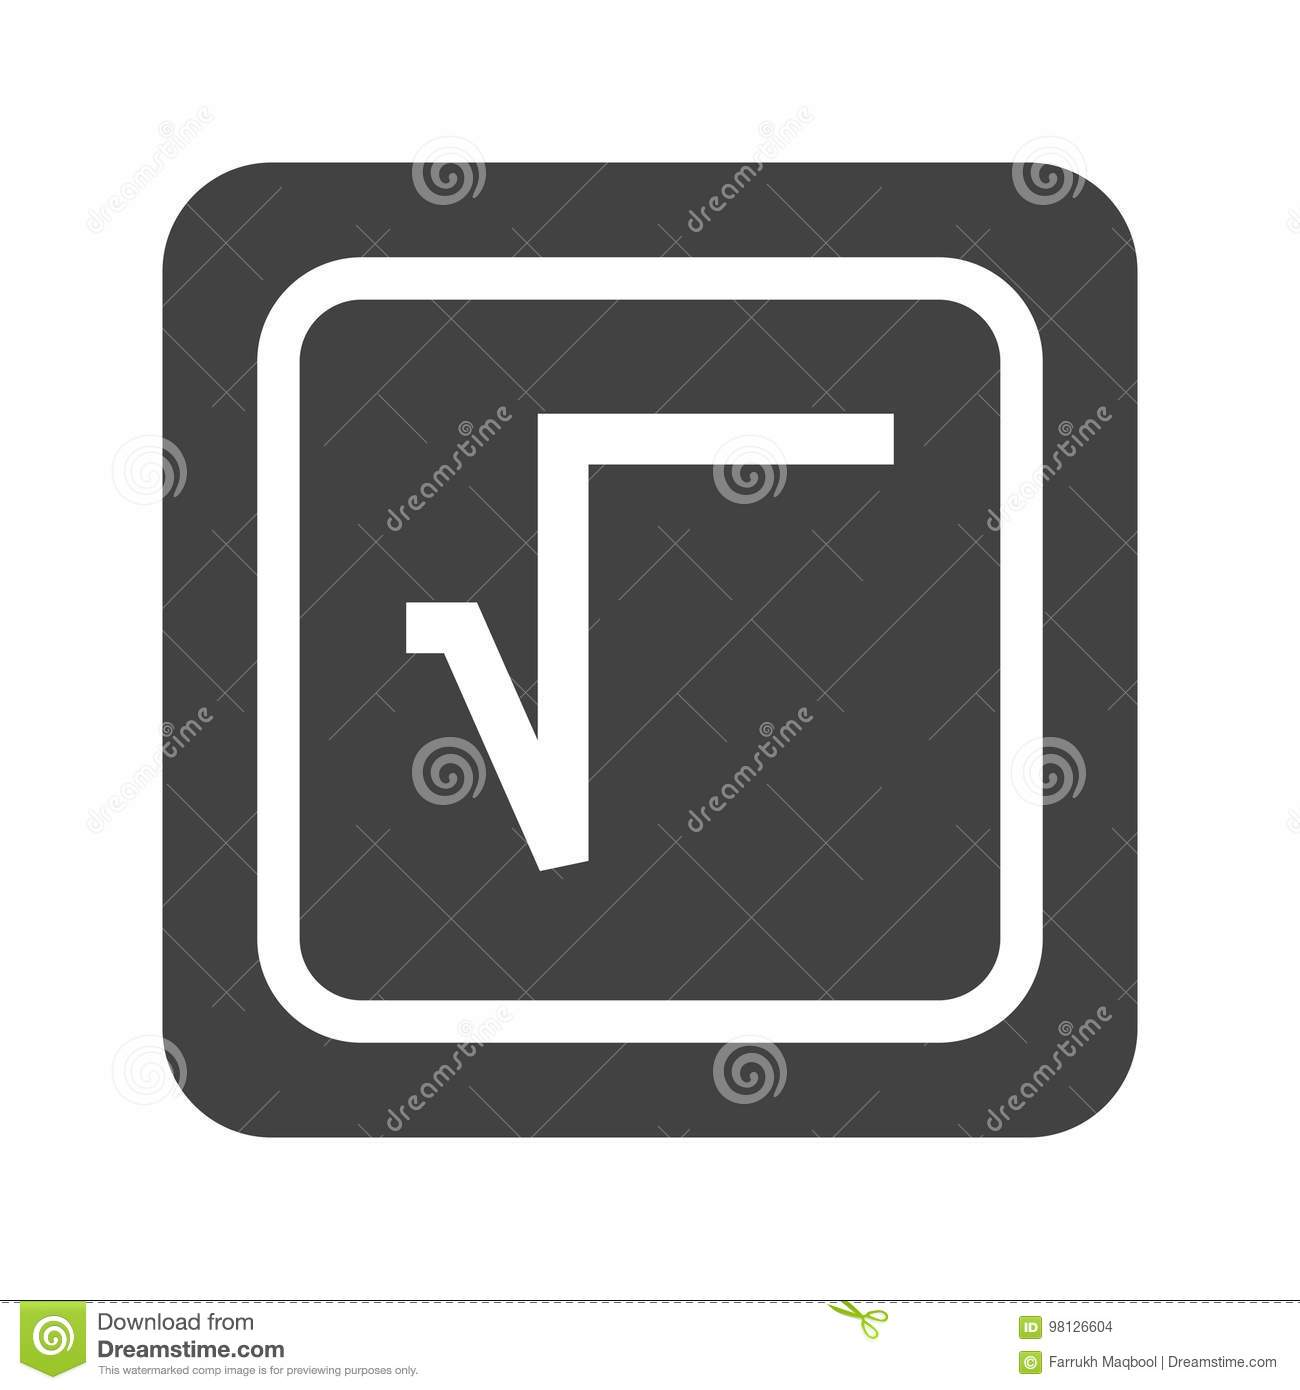 Square Root Symbol Stock Vector Illustration Of Radical 98126604